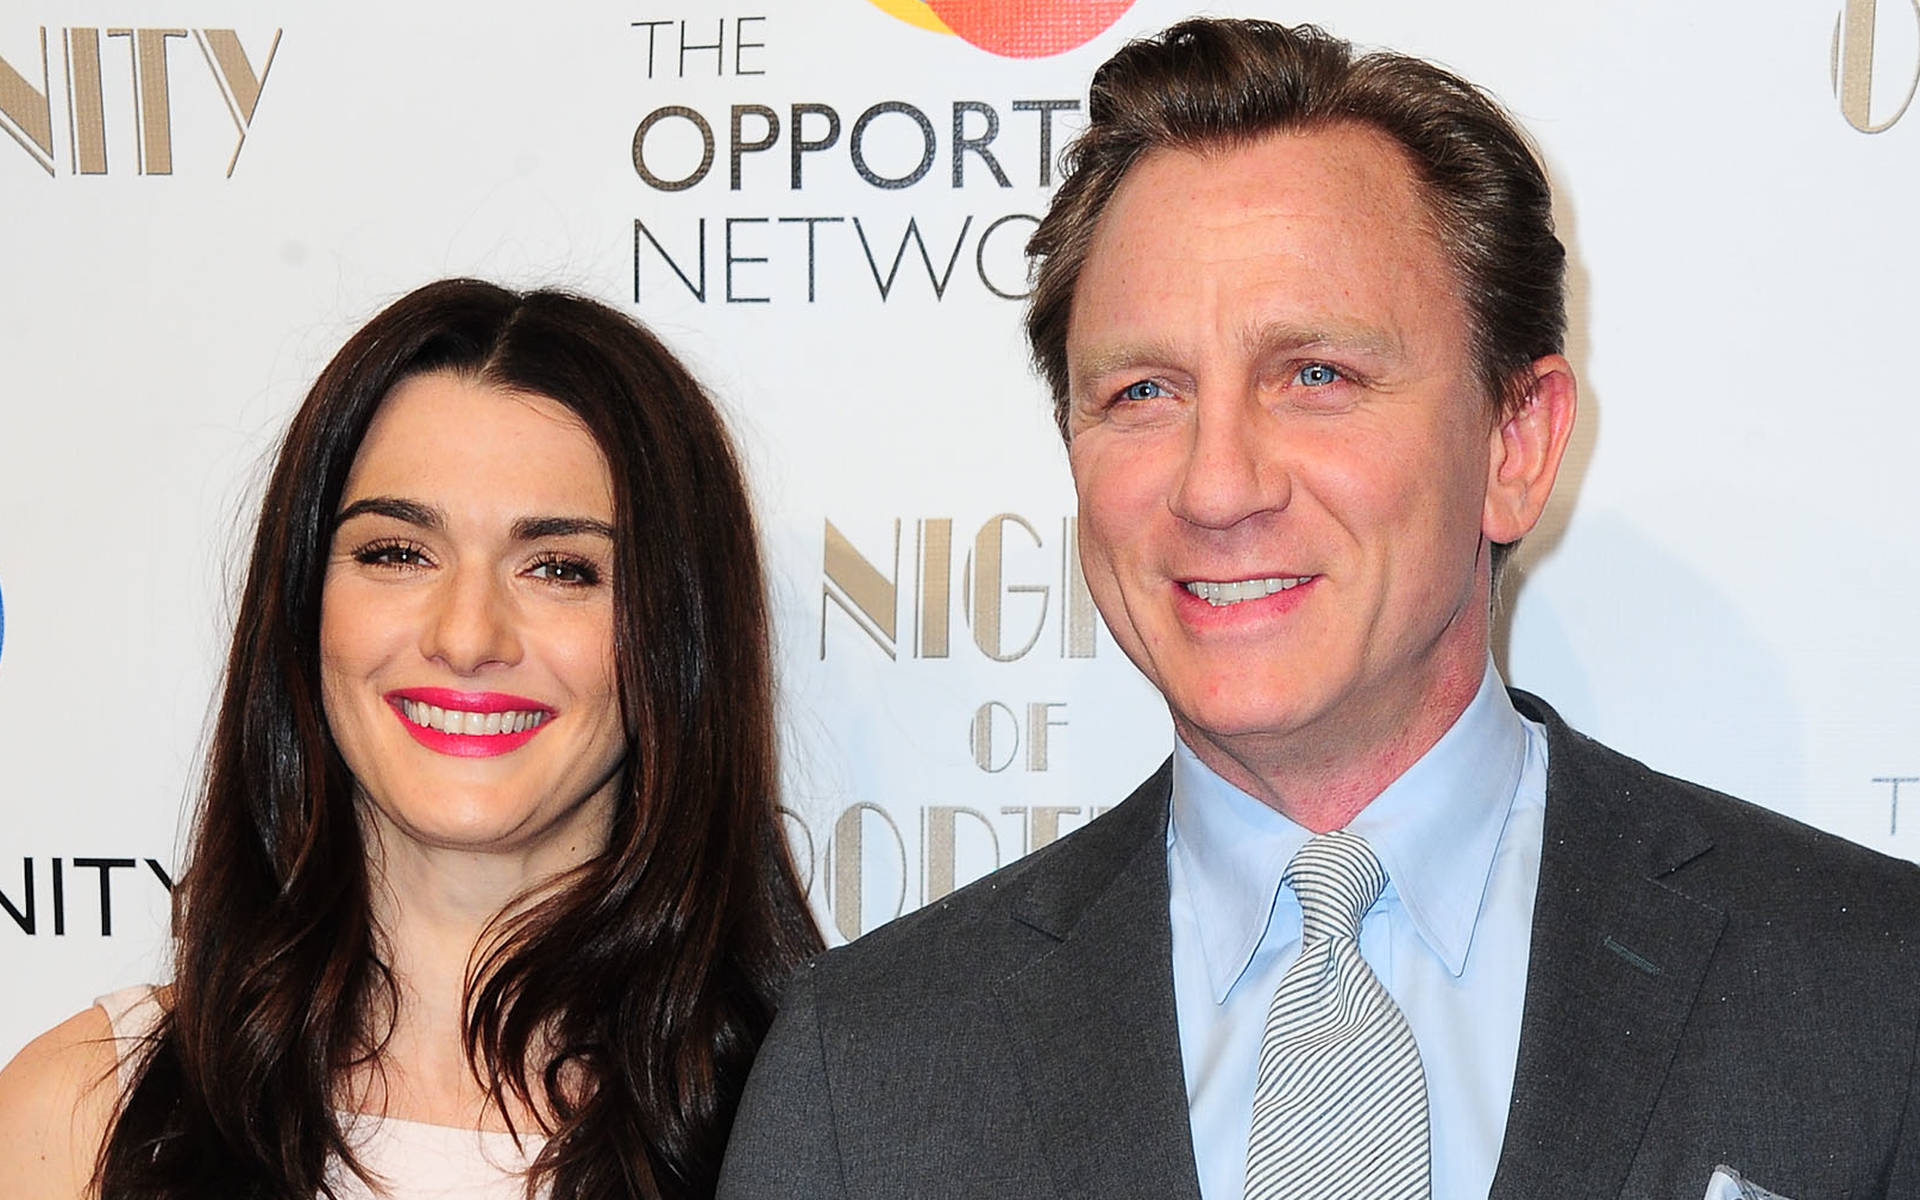 Daniel Craig dreaded telling wife about Bond injury - The ...